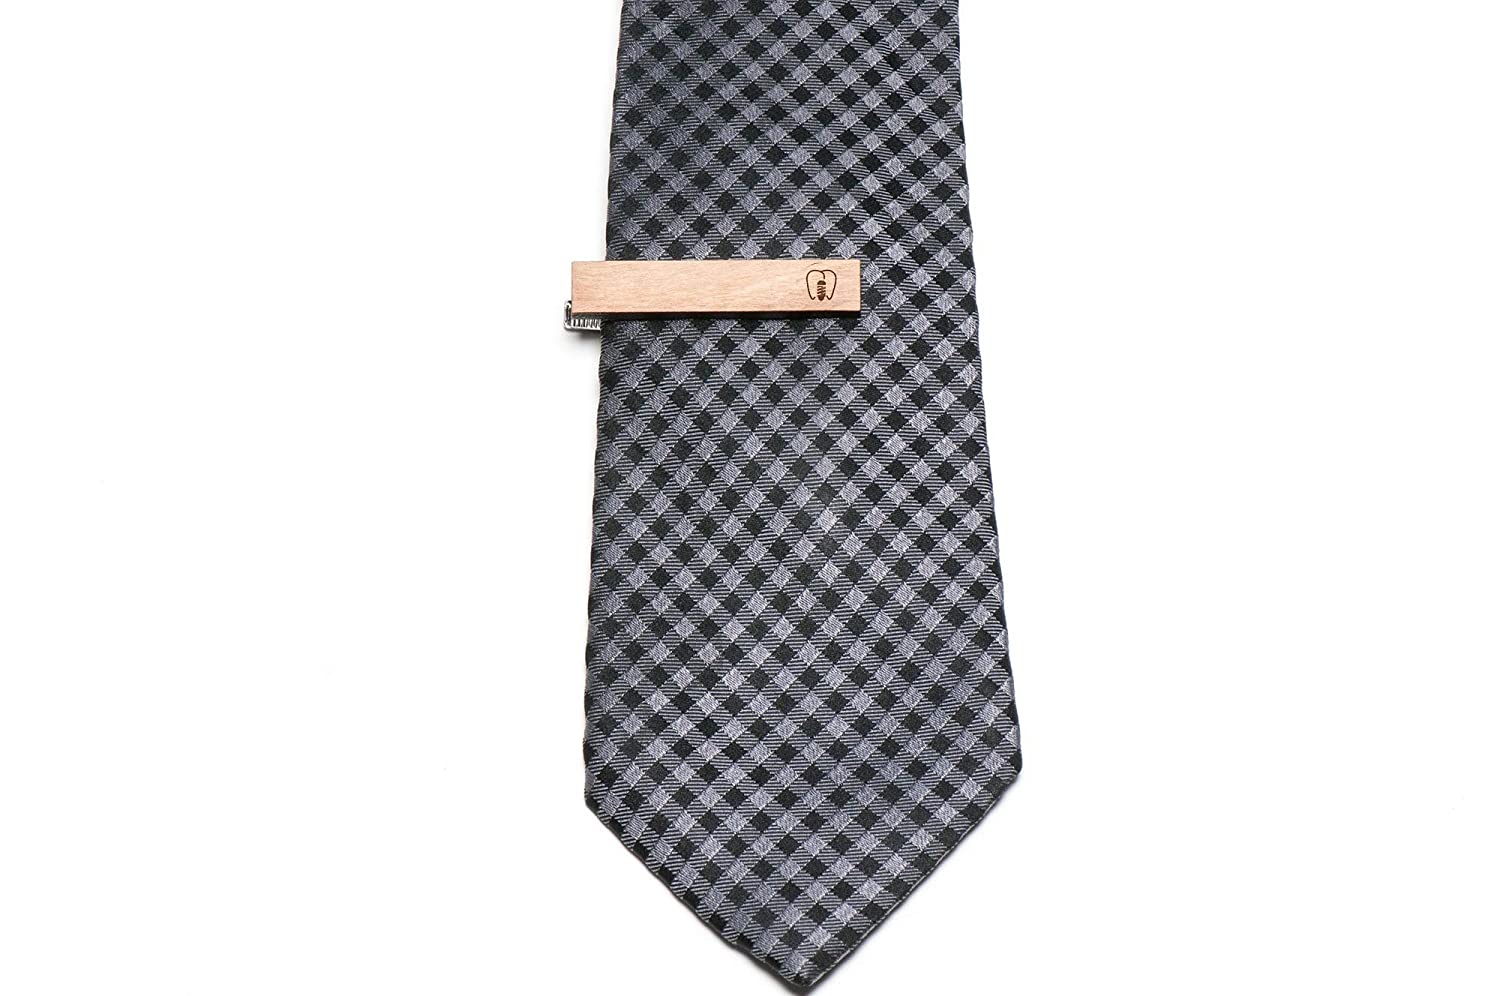 Wooden Accessories Company Wooden Tie Clips with Laser Engraved Premolar Implant Design Cherry Wood Tie Bar Engraved in The USA